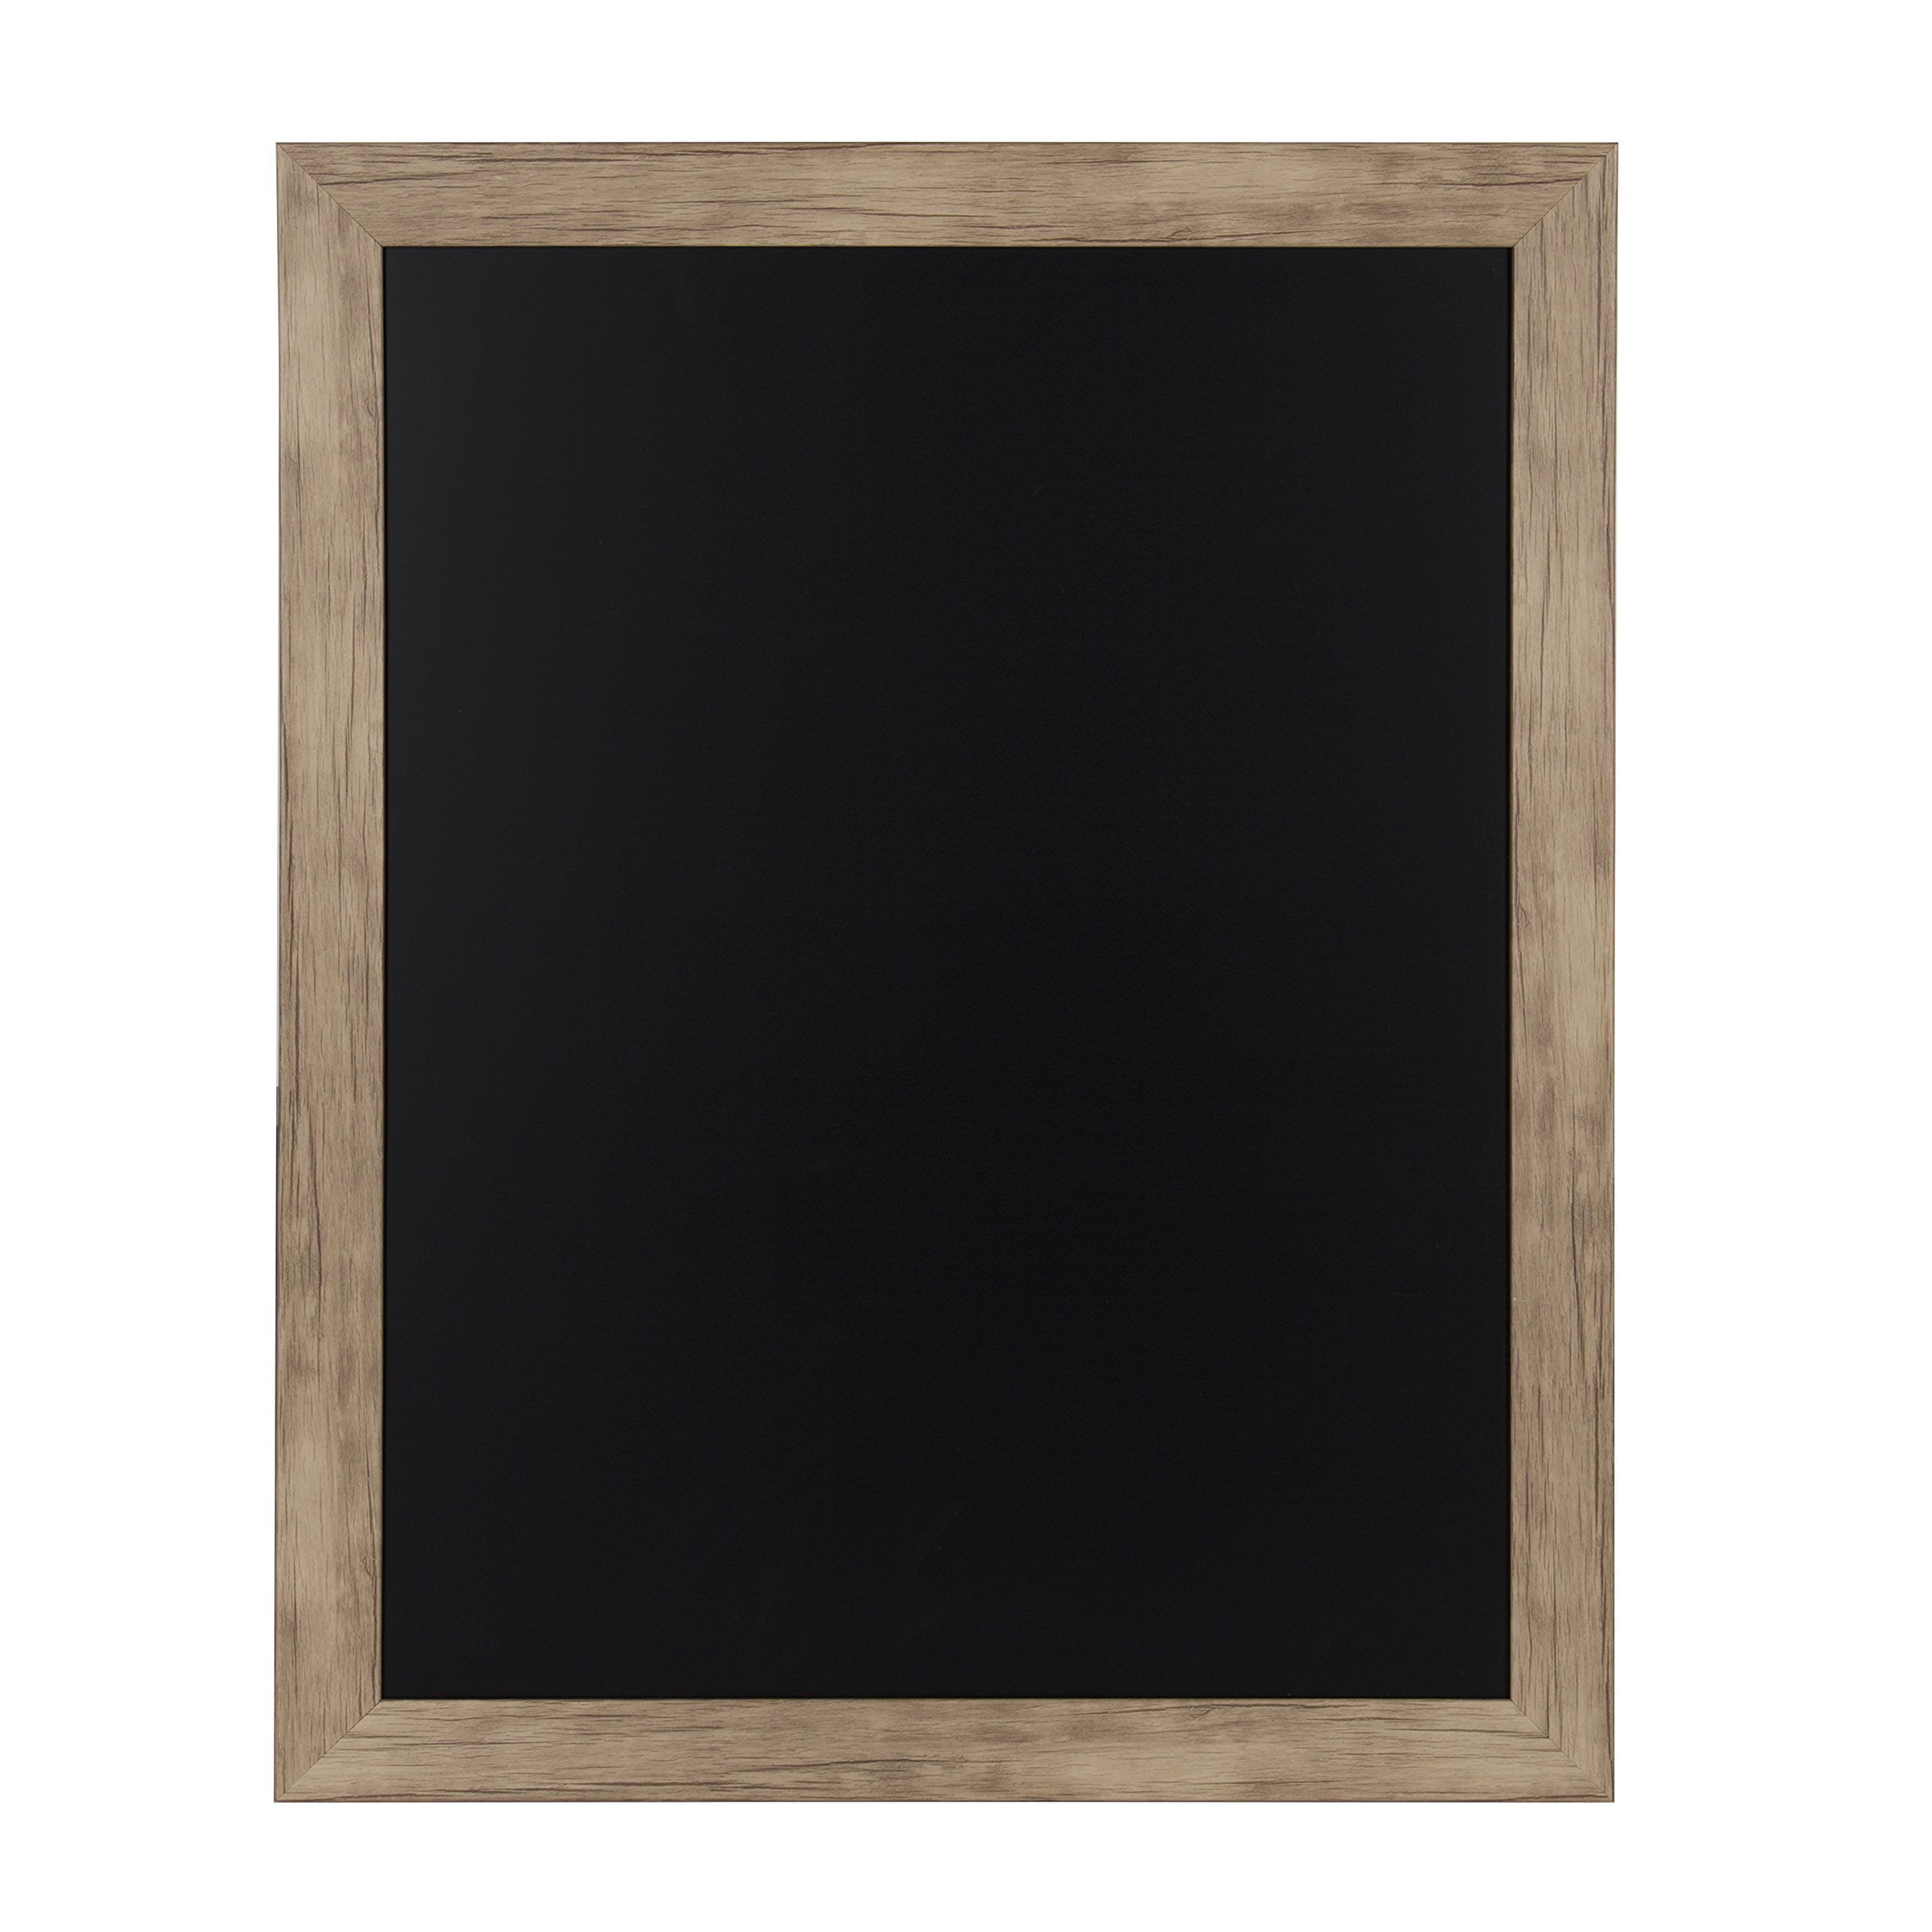 DesignOvation Beatrice Framed Magnetic Chalkboard, 23x29, Rustic Brown by DesignOvation